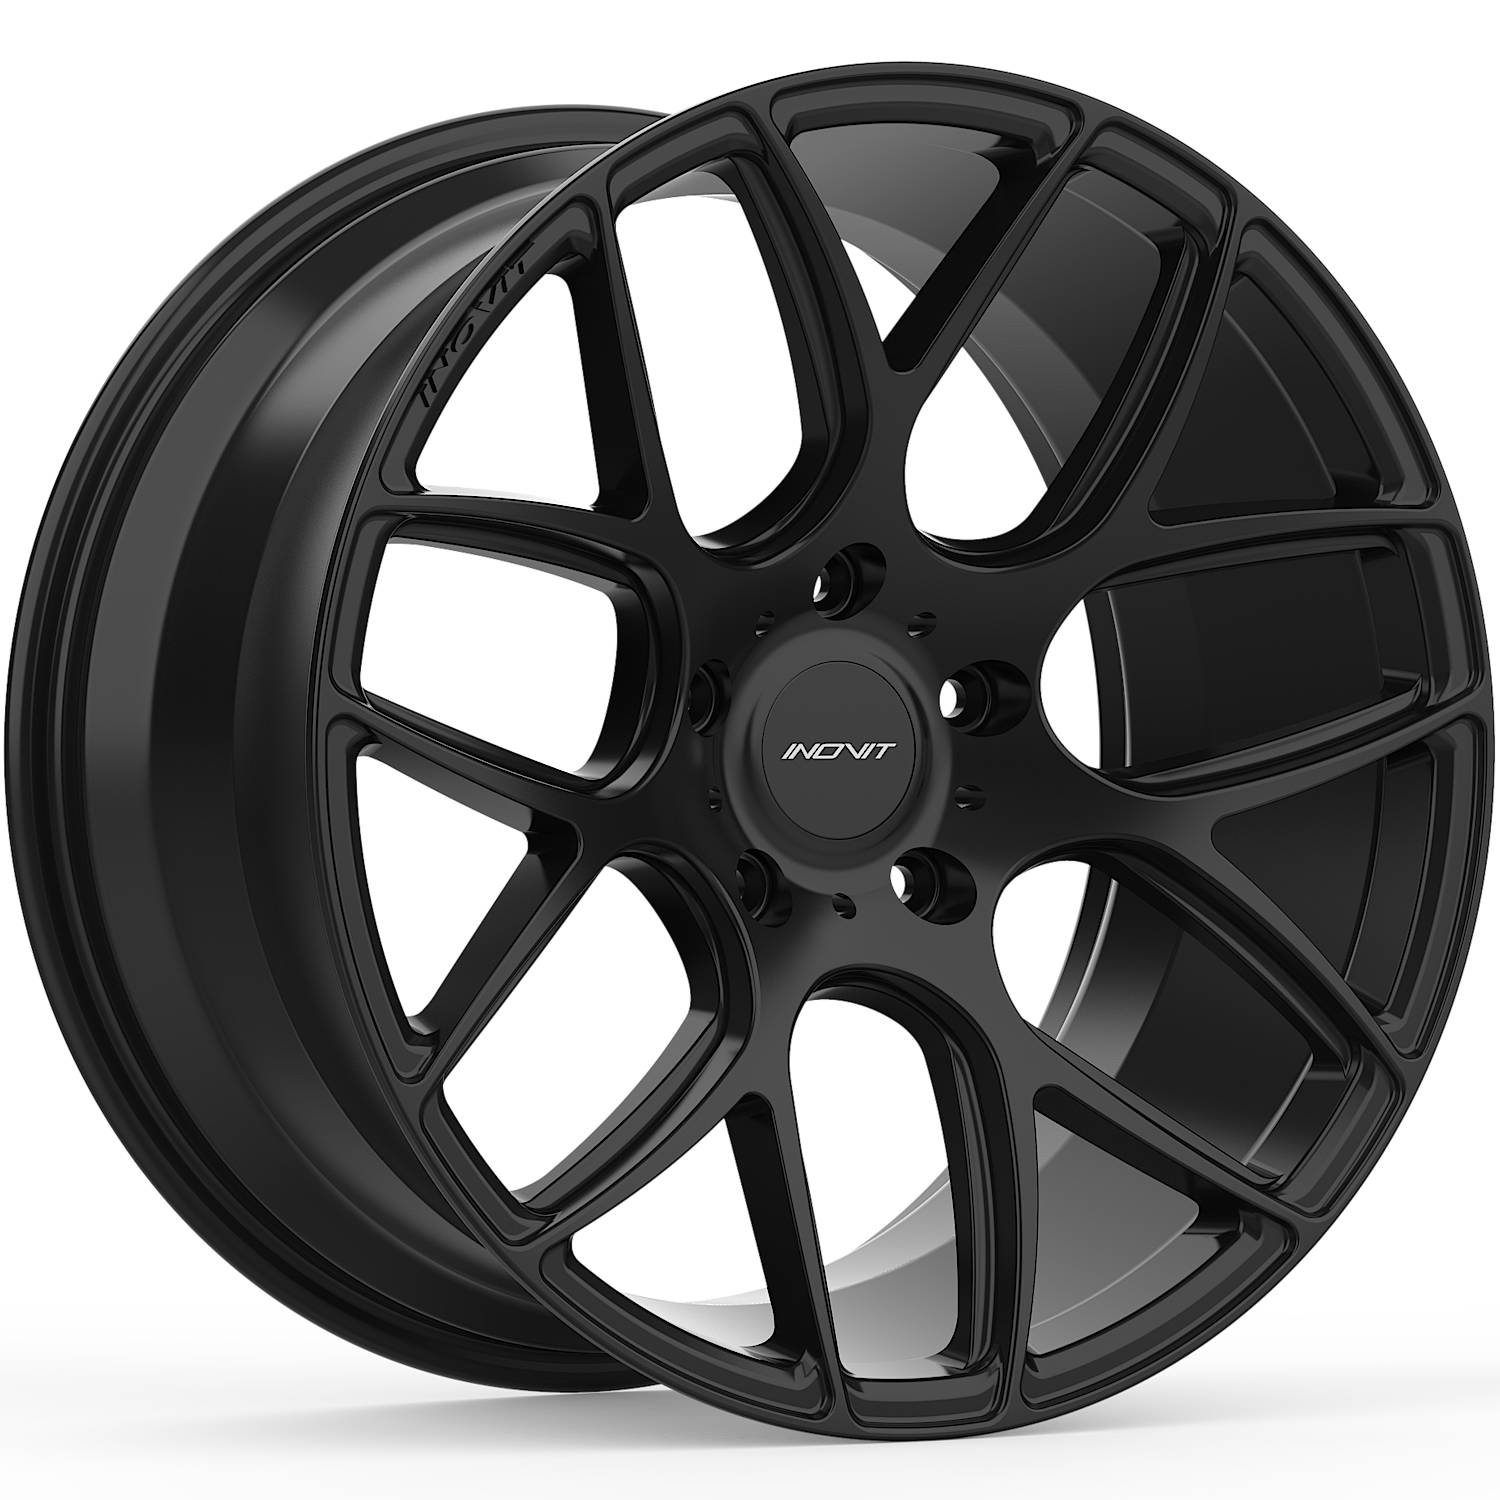 INOVIT Thrust Satin Black19x9.5 +35mm